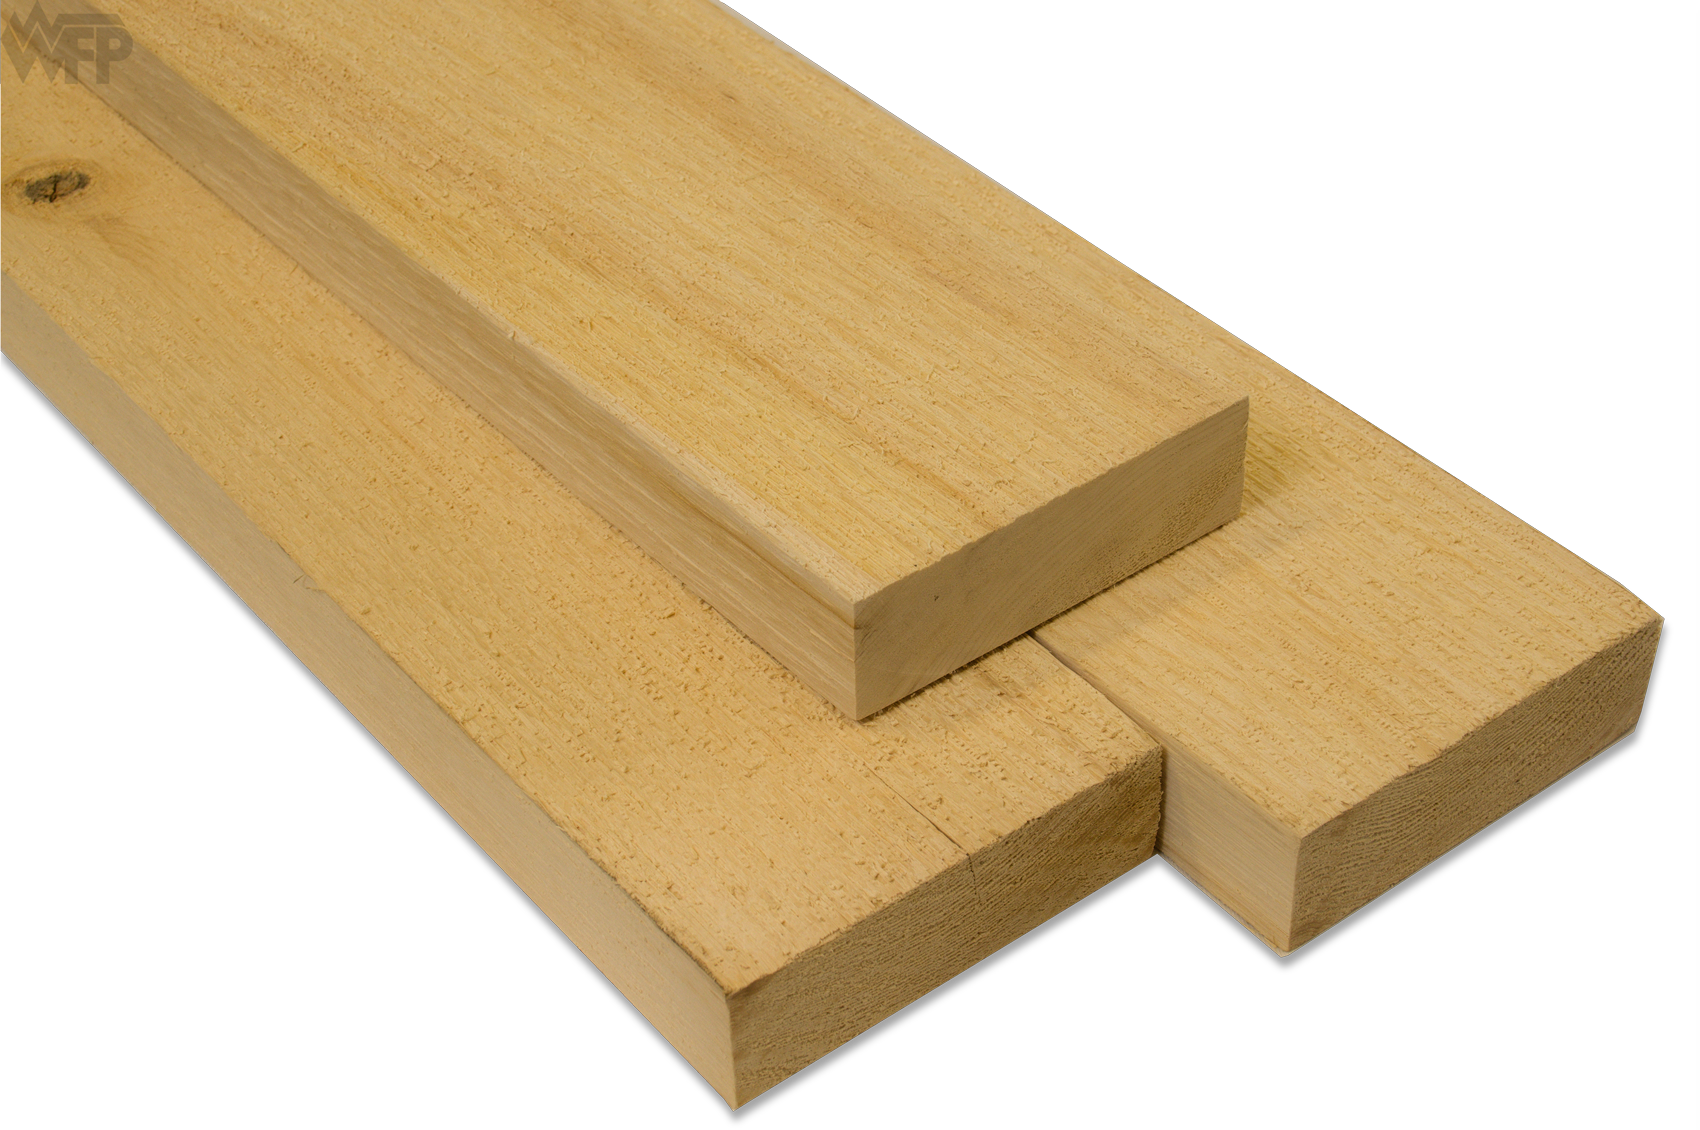 2X6 YC KNOTTY ROUGH - 3PC CLOSE UP branded